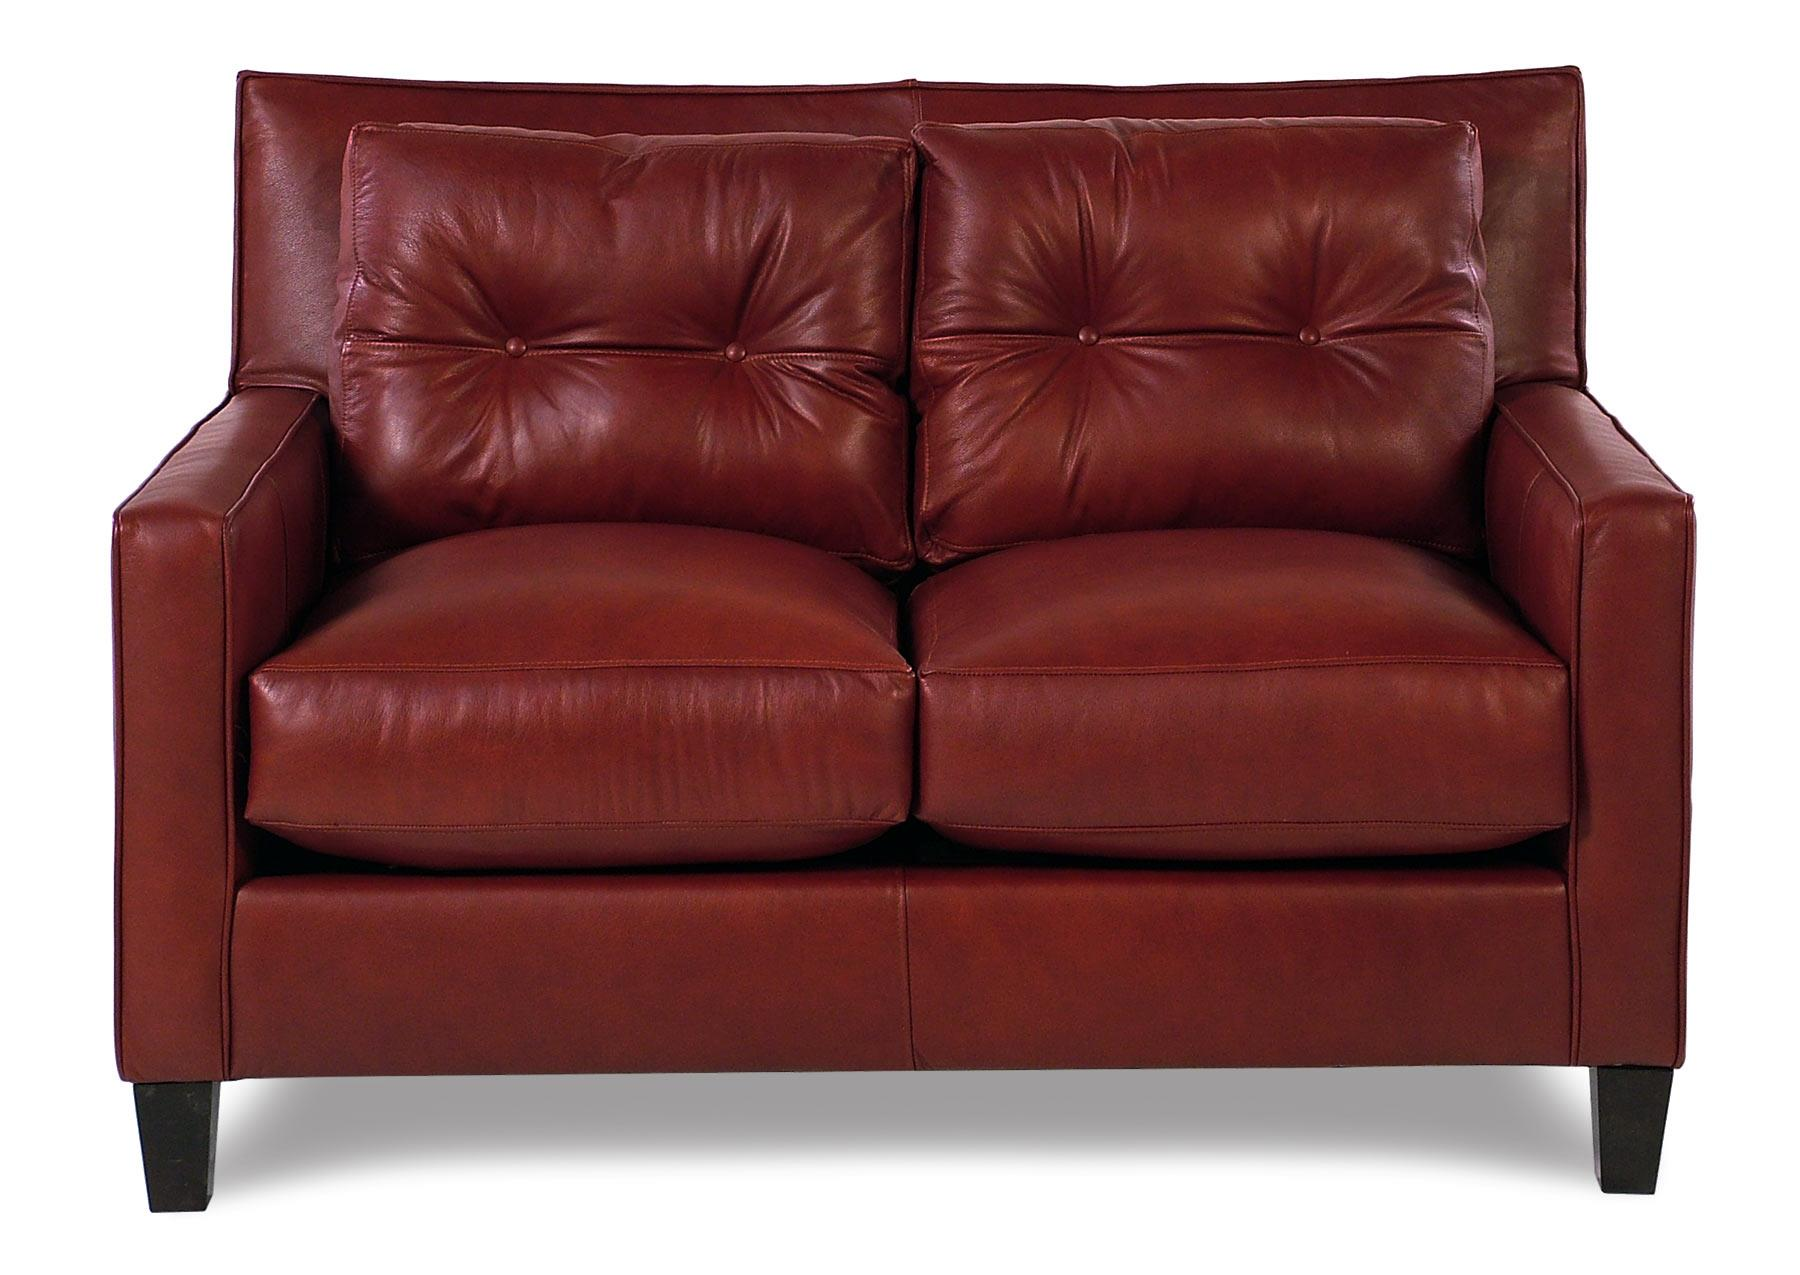 Broyhill Furniture Affinity Modern Leather Loveseat - Item Number: L6018-1-0016-67